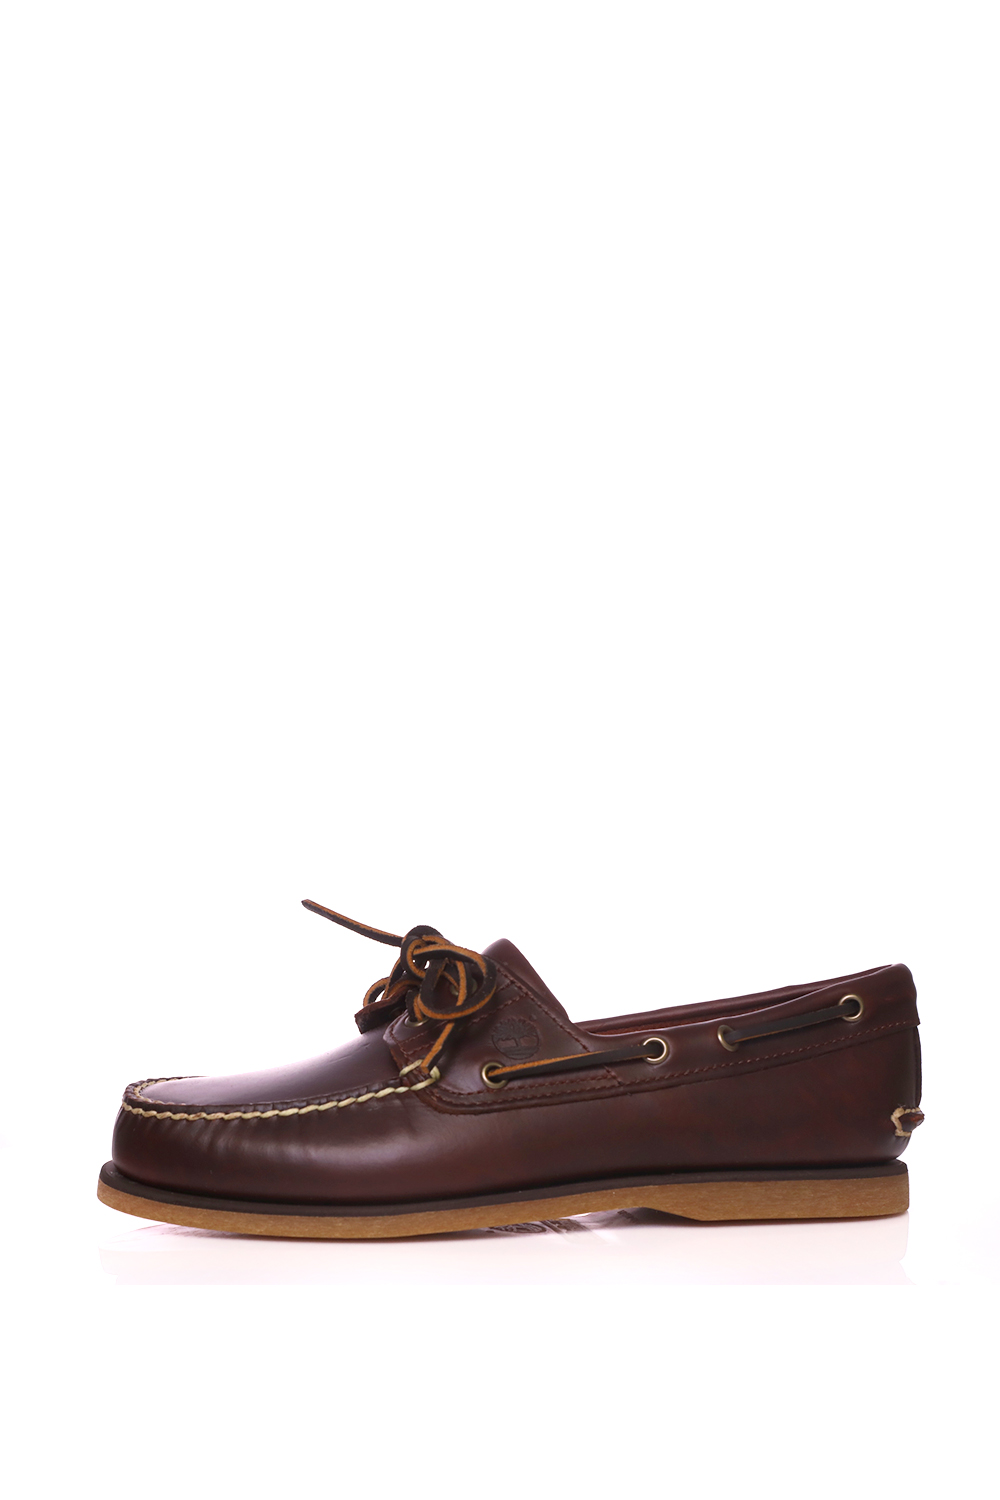 750d73dc9a Collective Online TIMBERLAND – Ανδρικά boat shoes TIMBERLAND Classic Boat 2  Eye καφέ